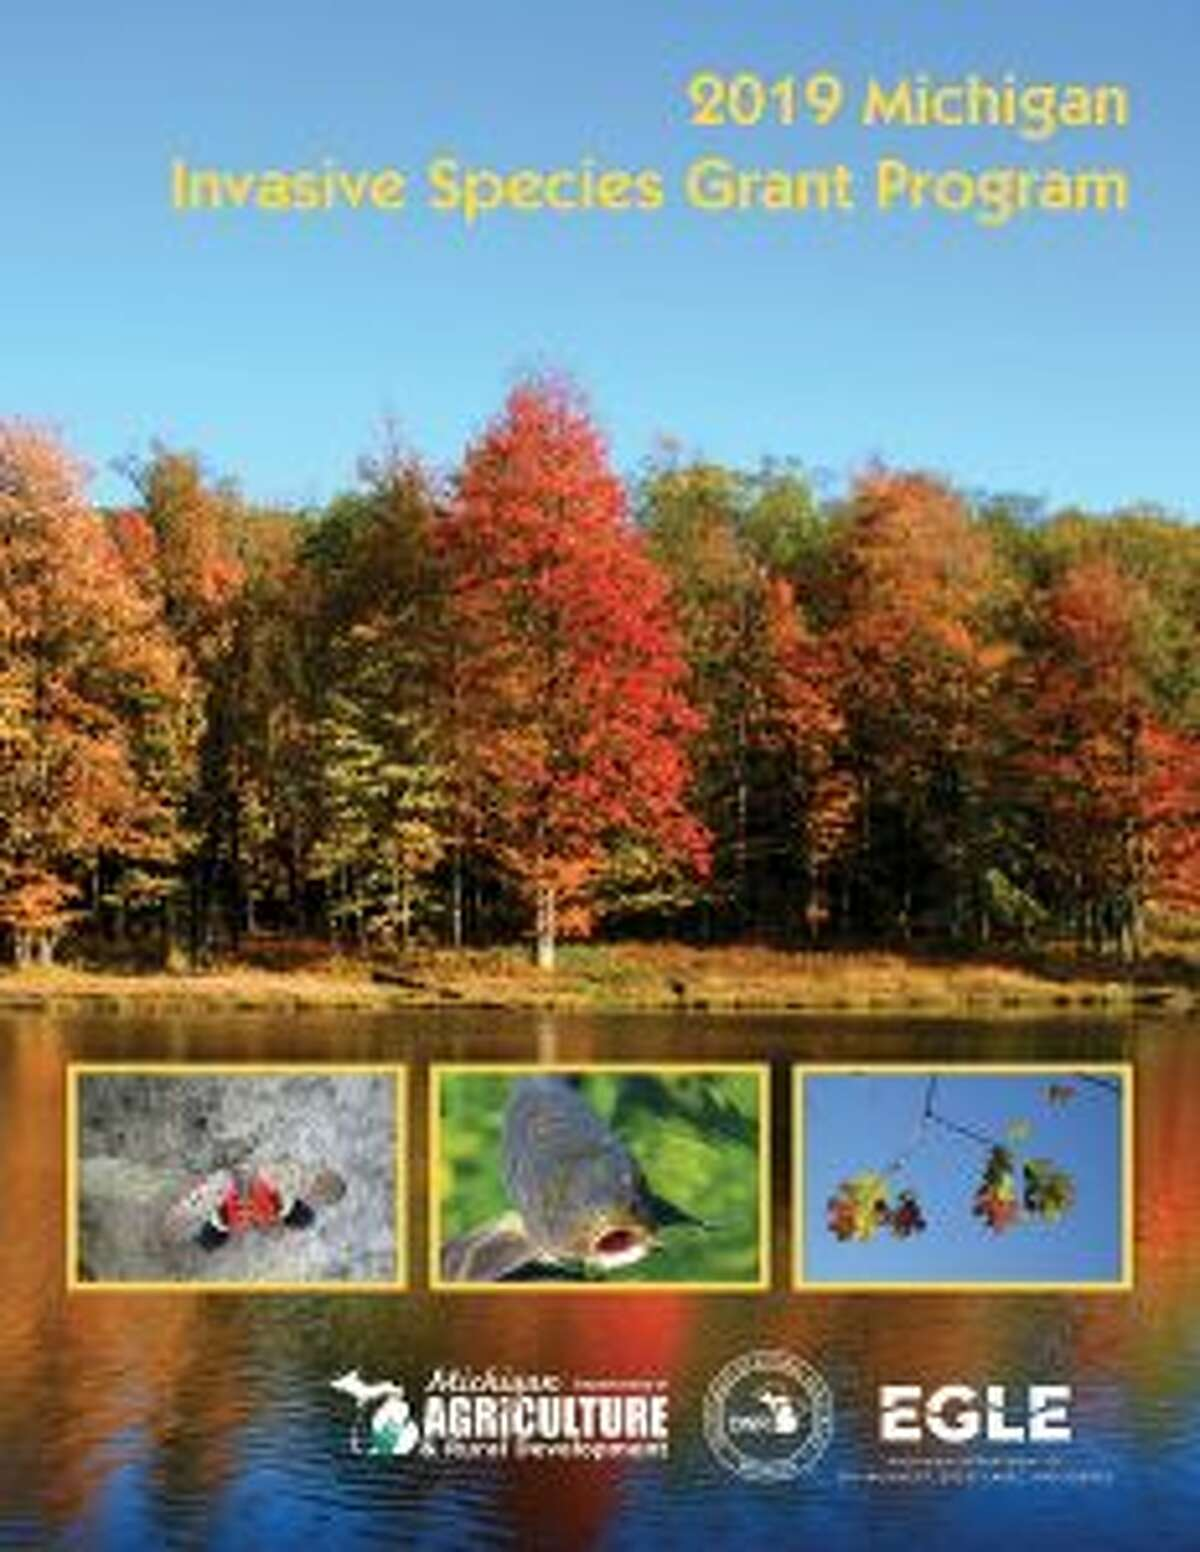 Information on the Michigan Invasive Species Grant Program, including the grant handbook, is available at Michigan.gov/Invasives. (Courtesy photo)